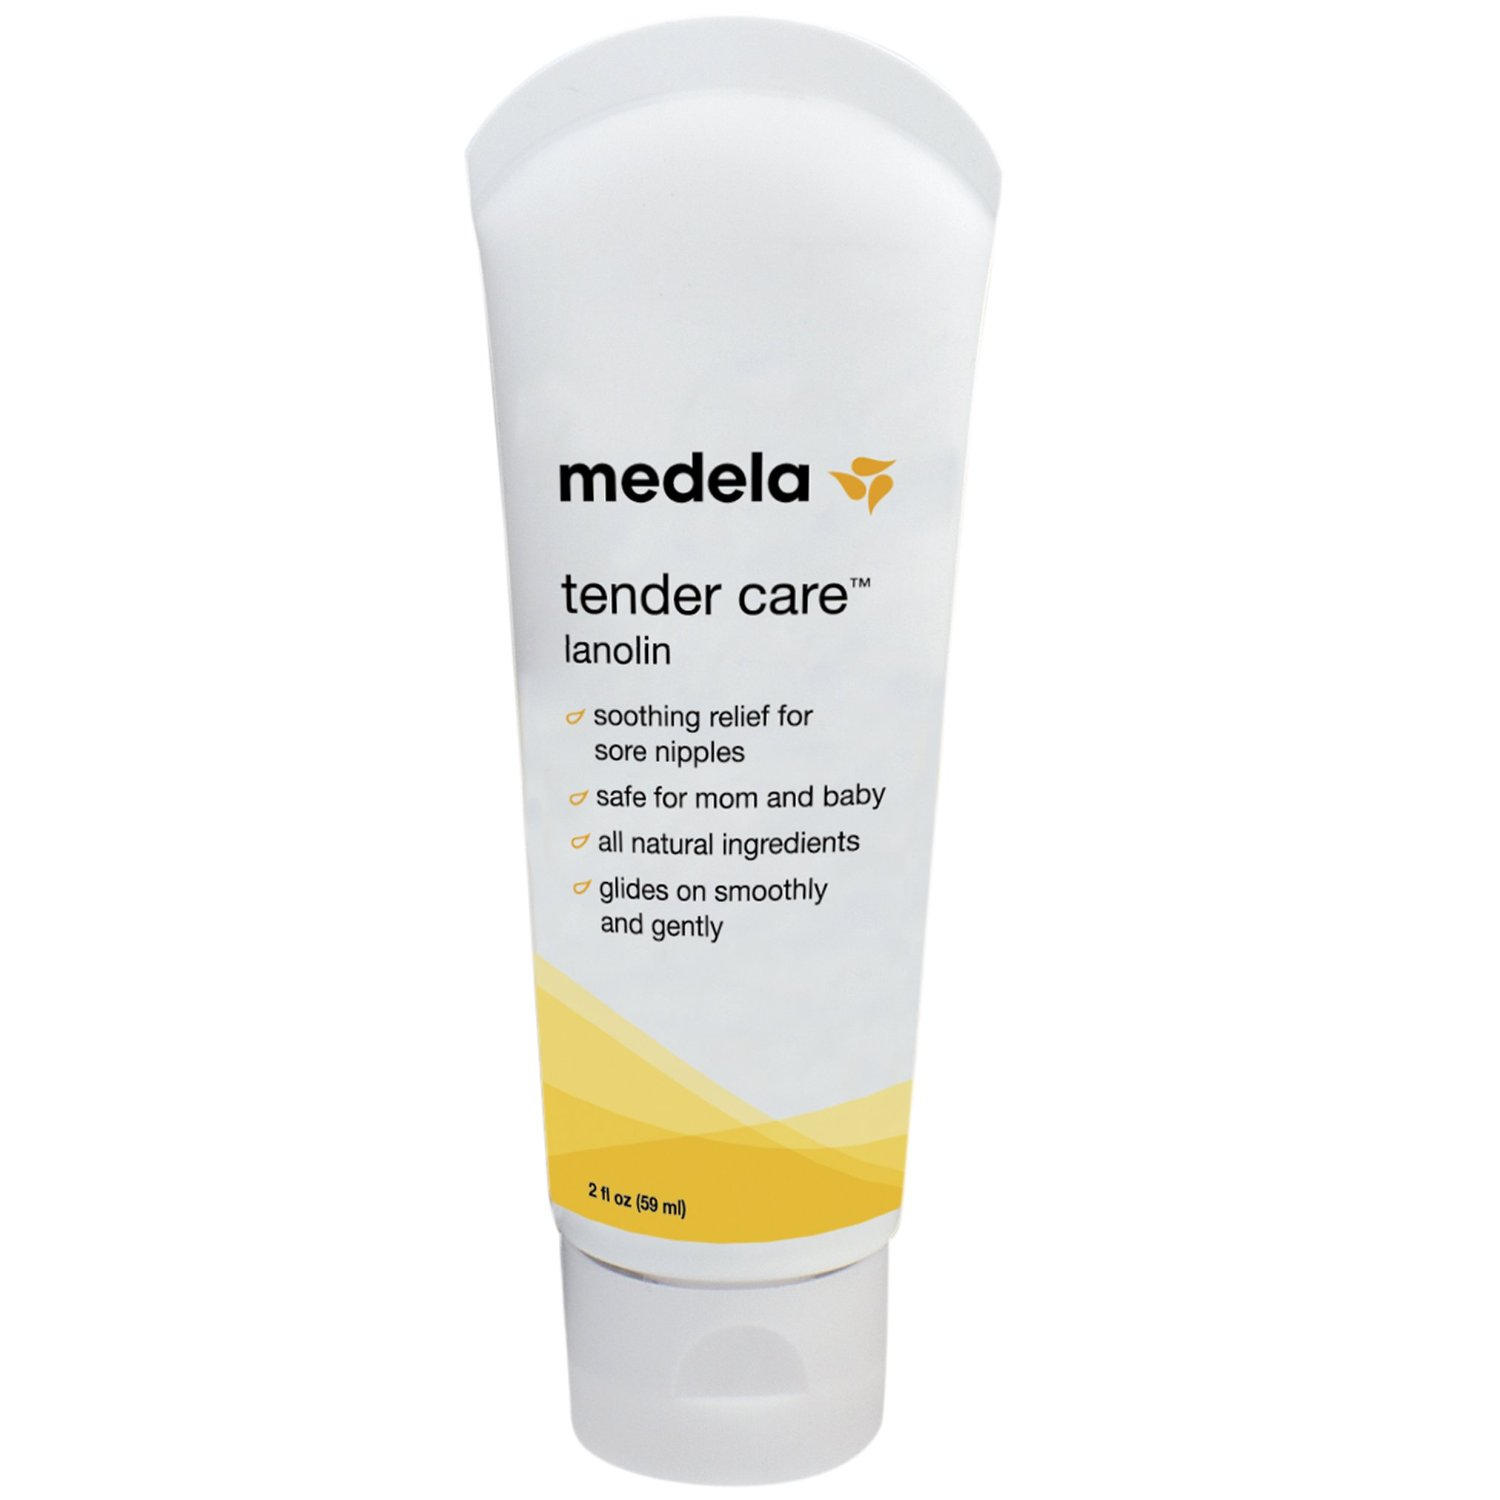 Medela Tender Care Lanolin Advanced Nipple Therapy